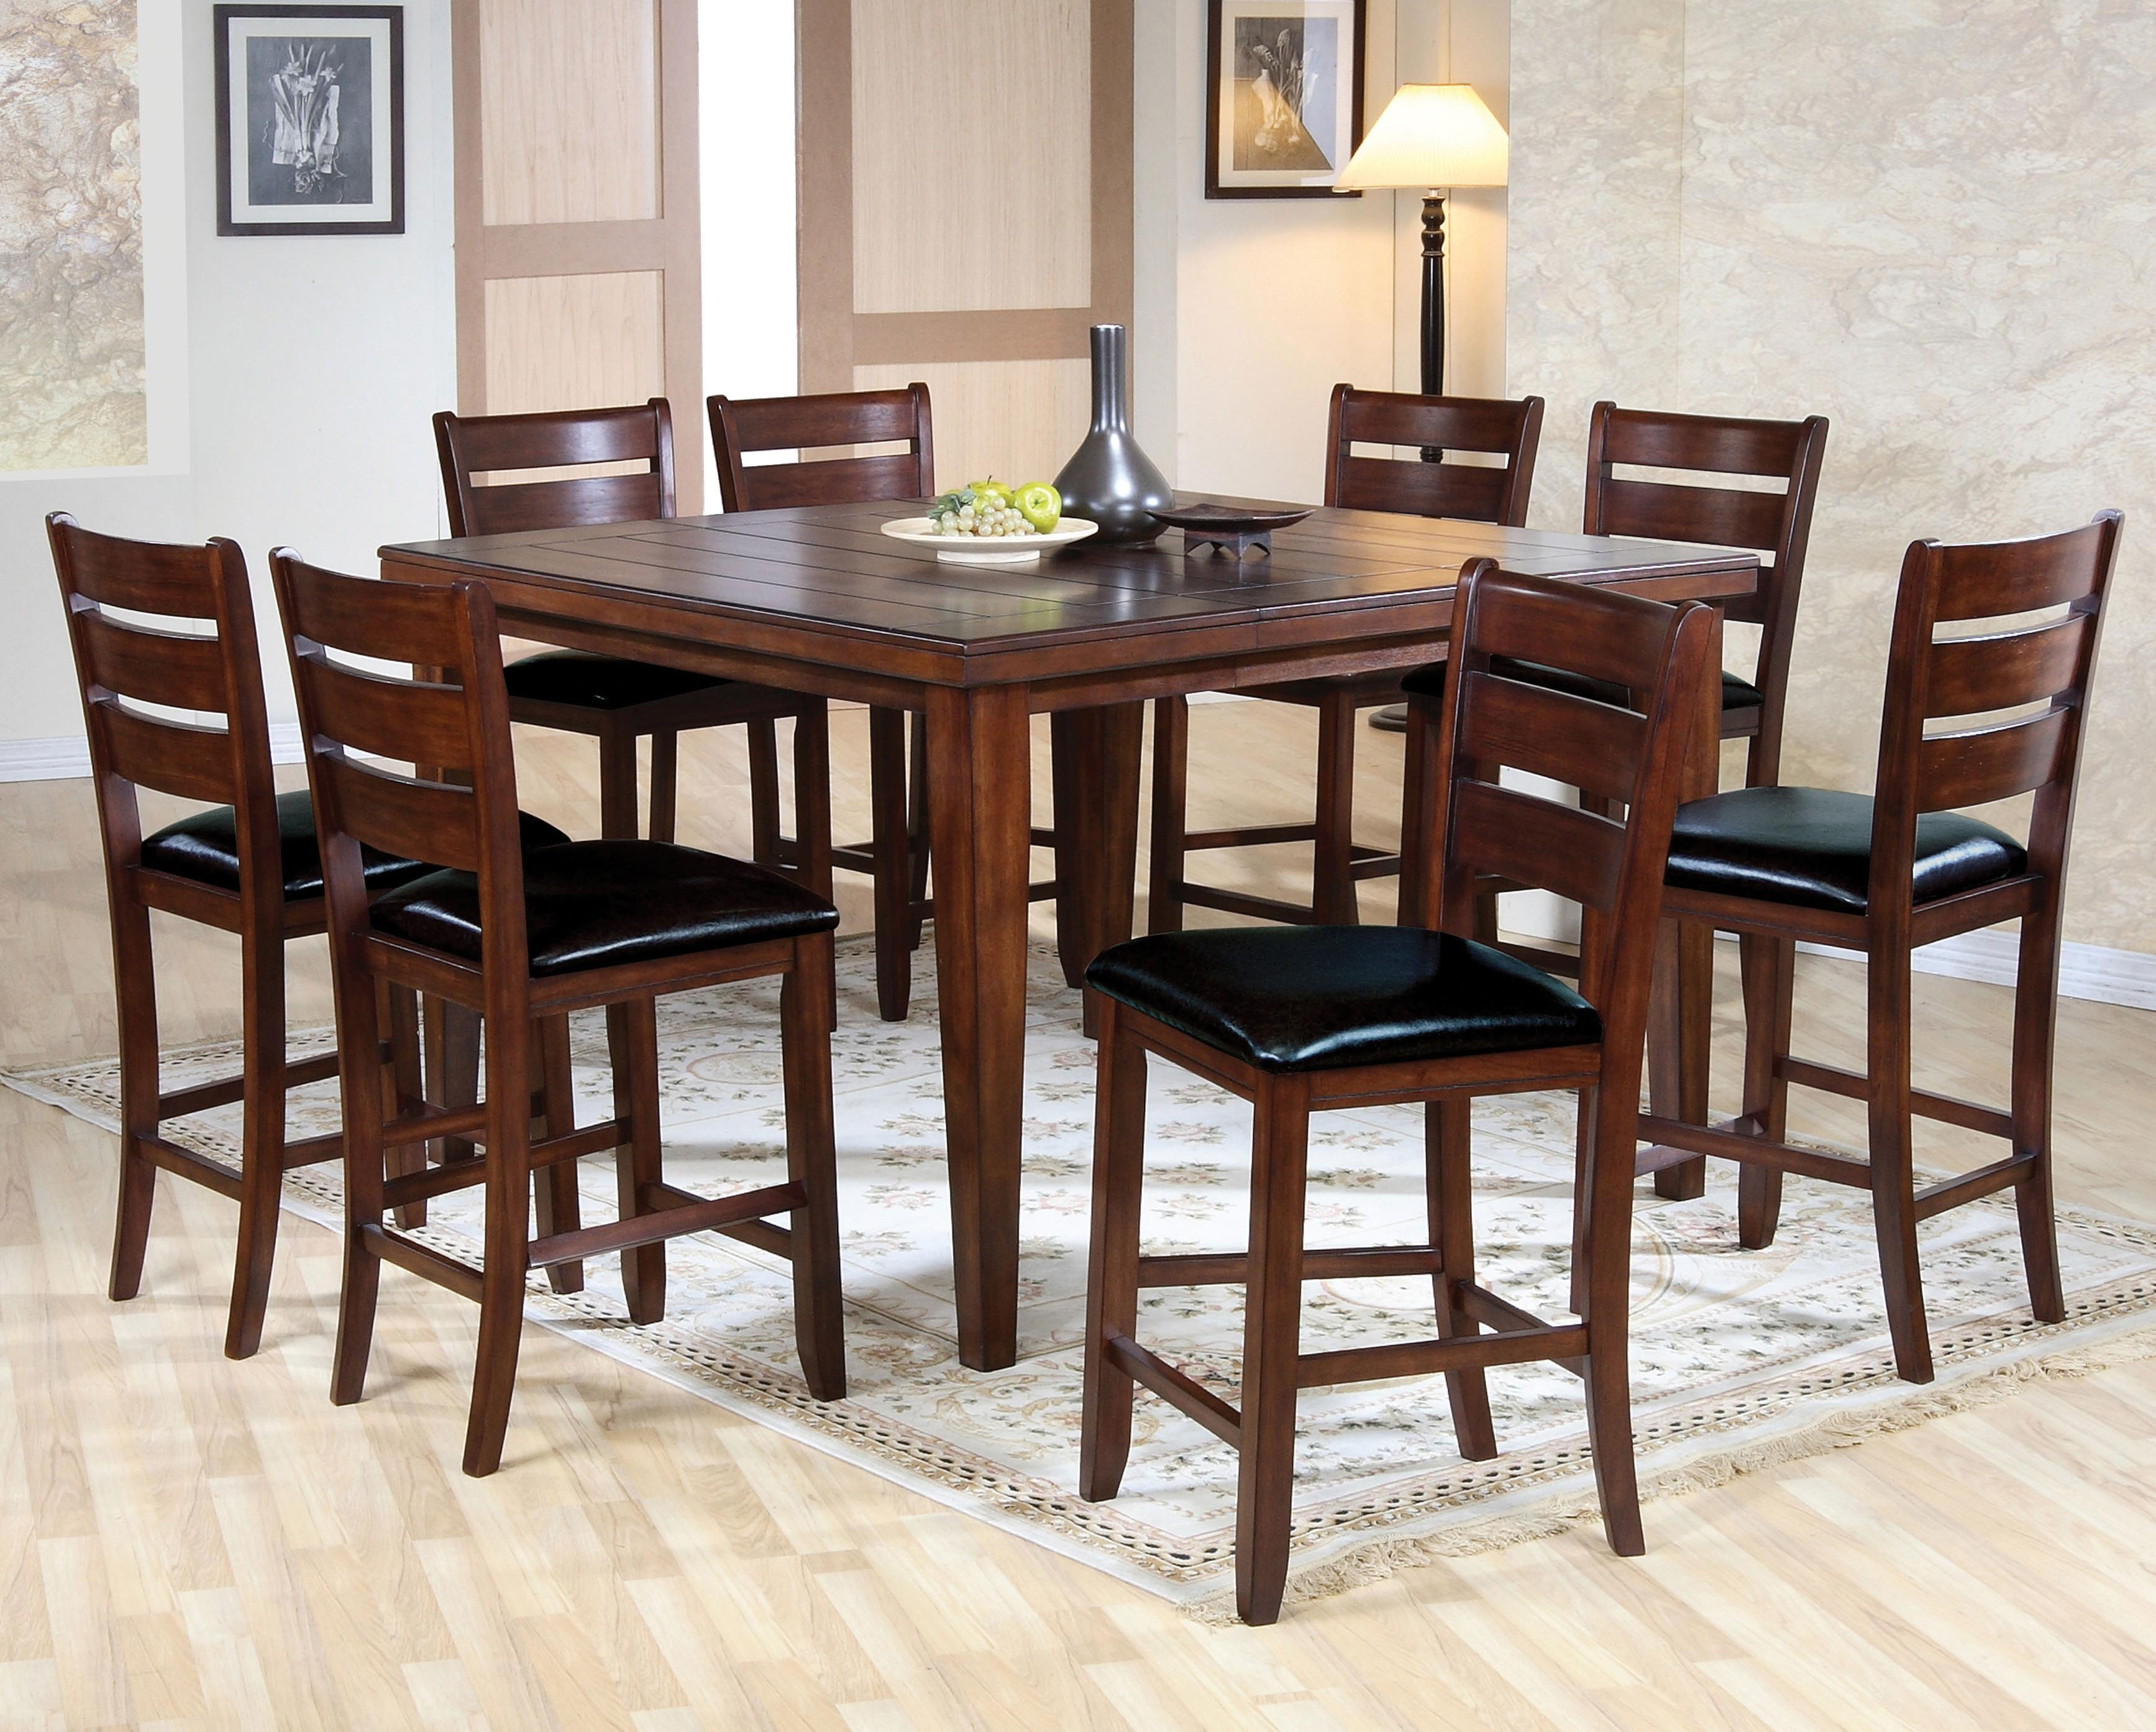 Acme Furniture 00680 Counter Height Dining Set - Item Number: 0682+8x0682